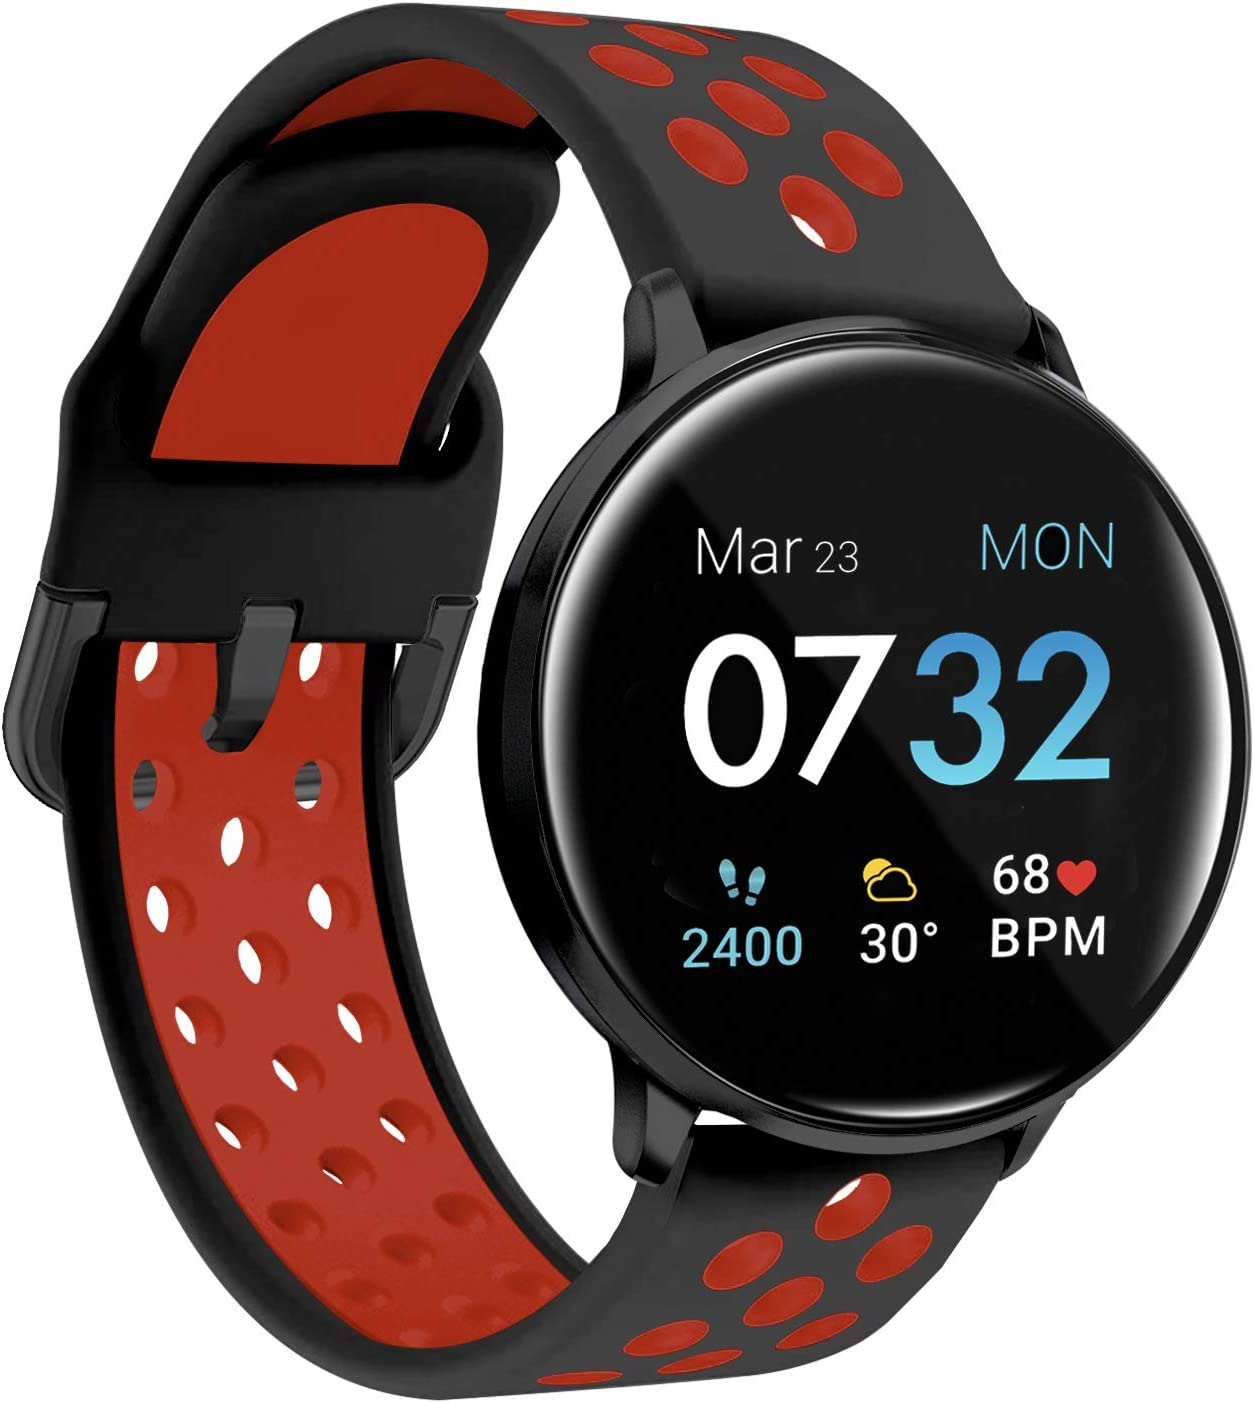 iTouch Sport 3 Smartwatch Fitness Tracker Body Temperature Heart Rate Step Counter Sleep Monitor IP68 Waterproof for Women & Men up to 30 Day Battery Touch Screen Compatible w Android & IOS (45mm)